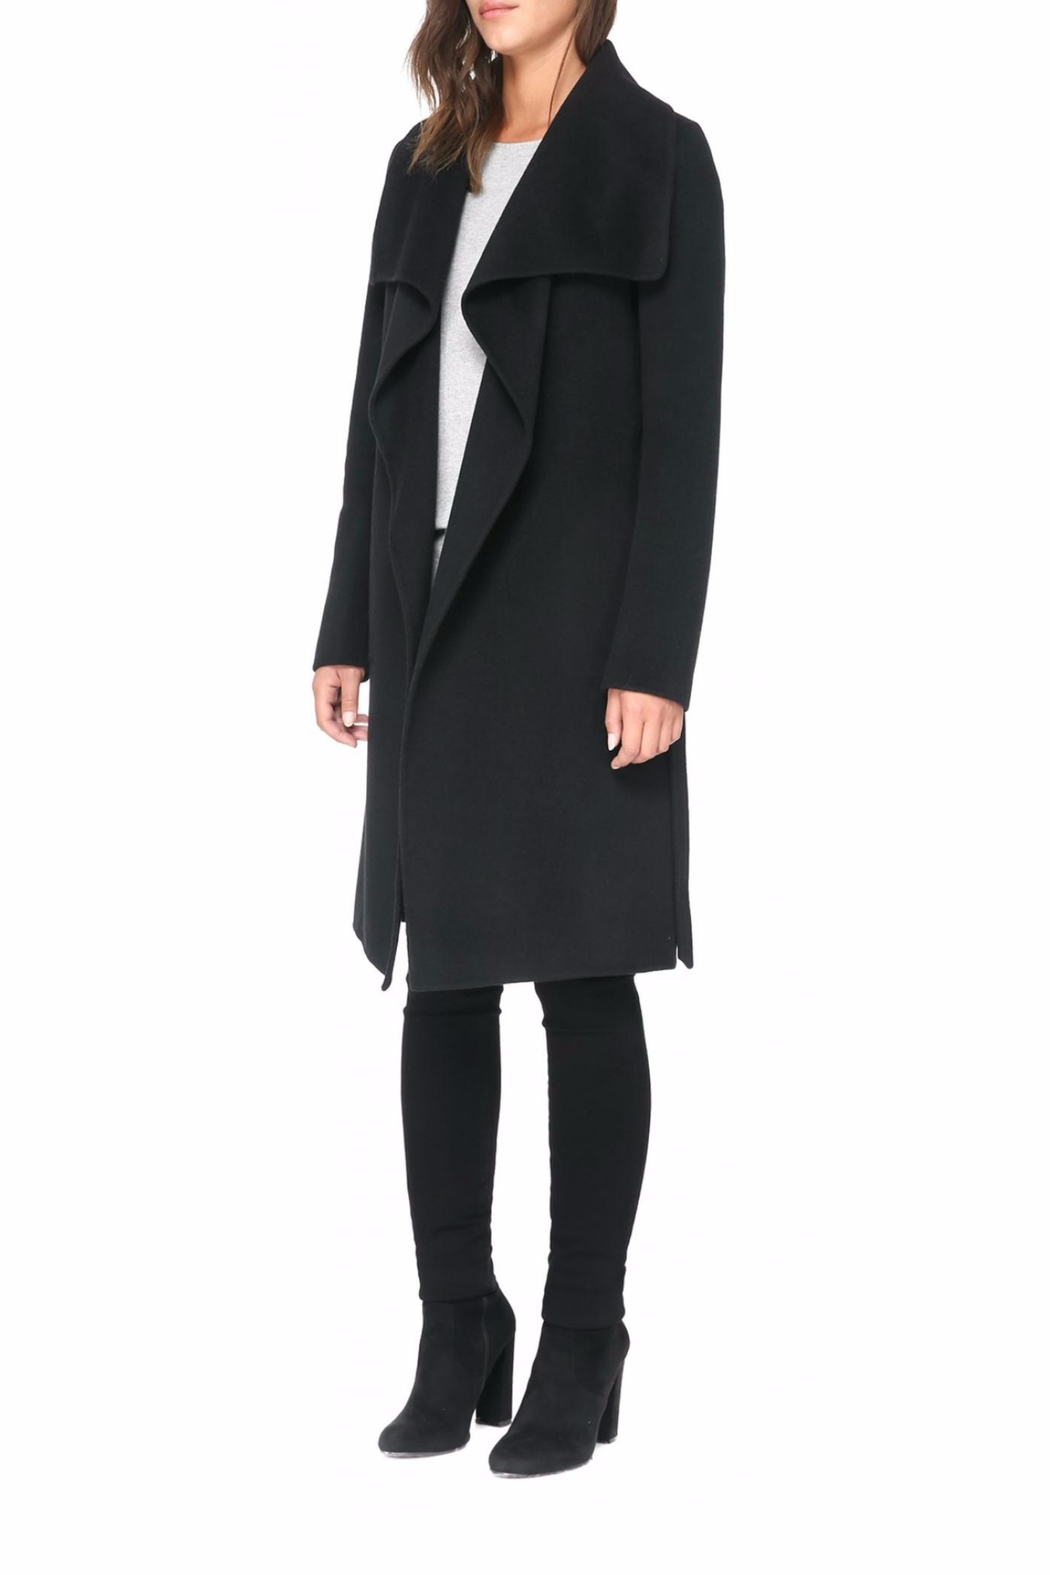 Soia & Kyo Oxana Wool Coat - Back Cropped Image